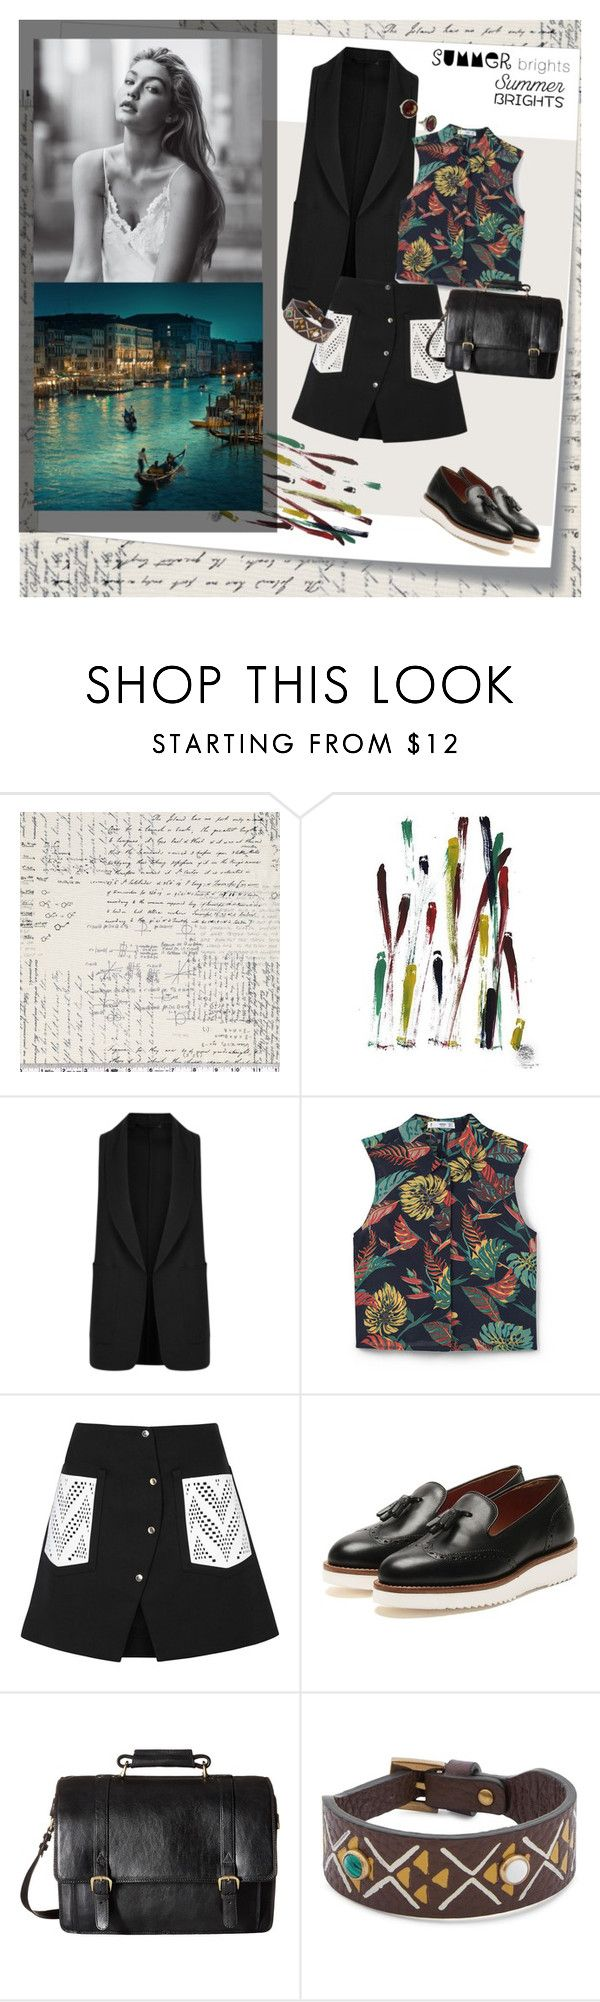 """Летние ночи..."" by mariettamyan ❤ liked on Polyvore featuring Post-It, NOVICA, Alexander Wang, MANGO, Kenzo, Grenson, Scully and Valentino"